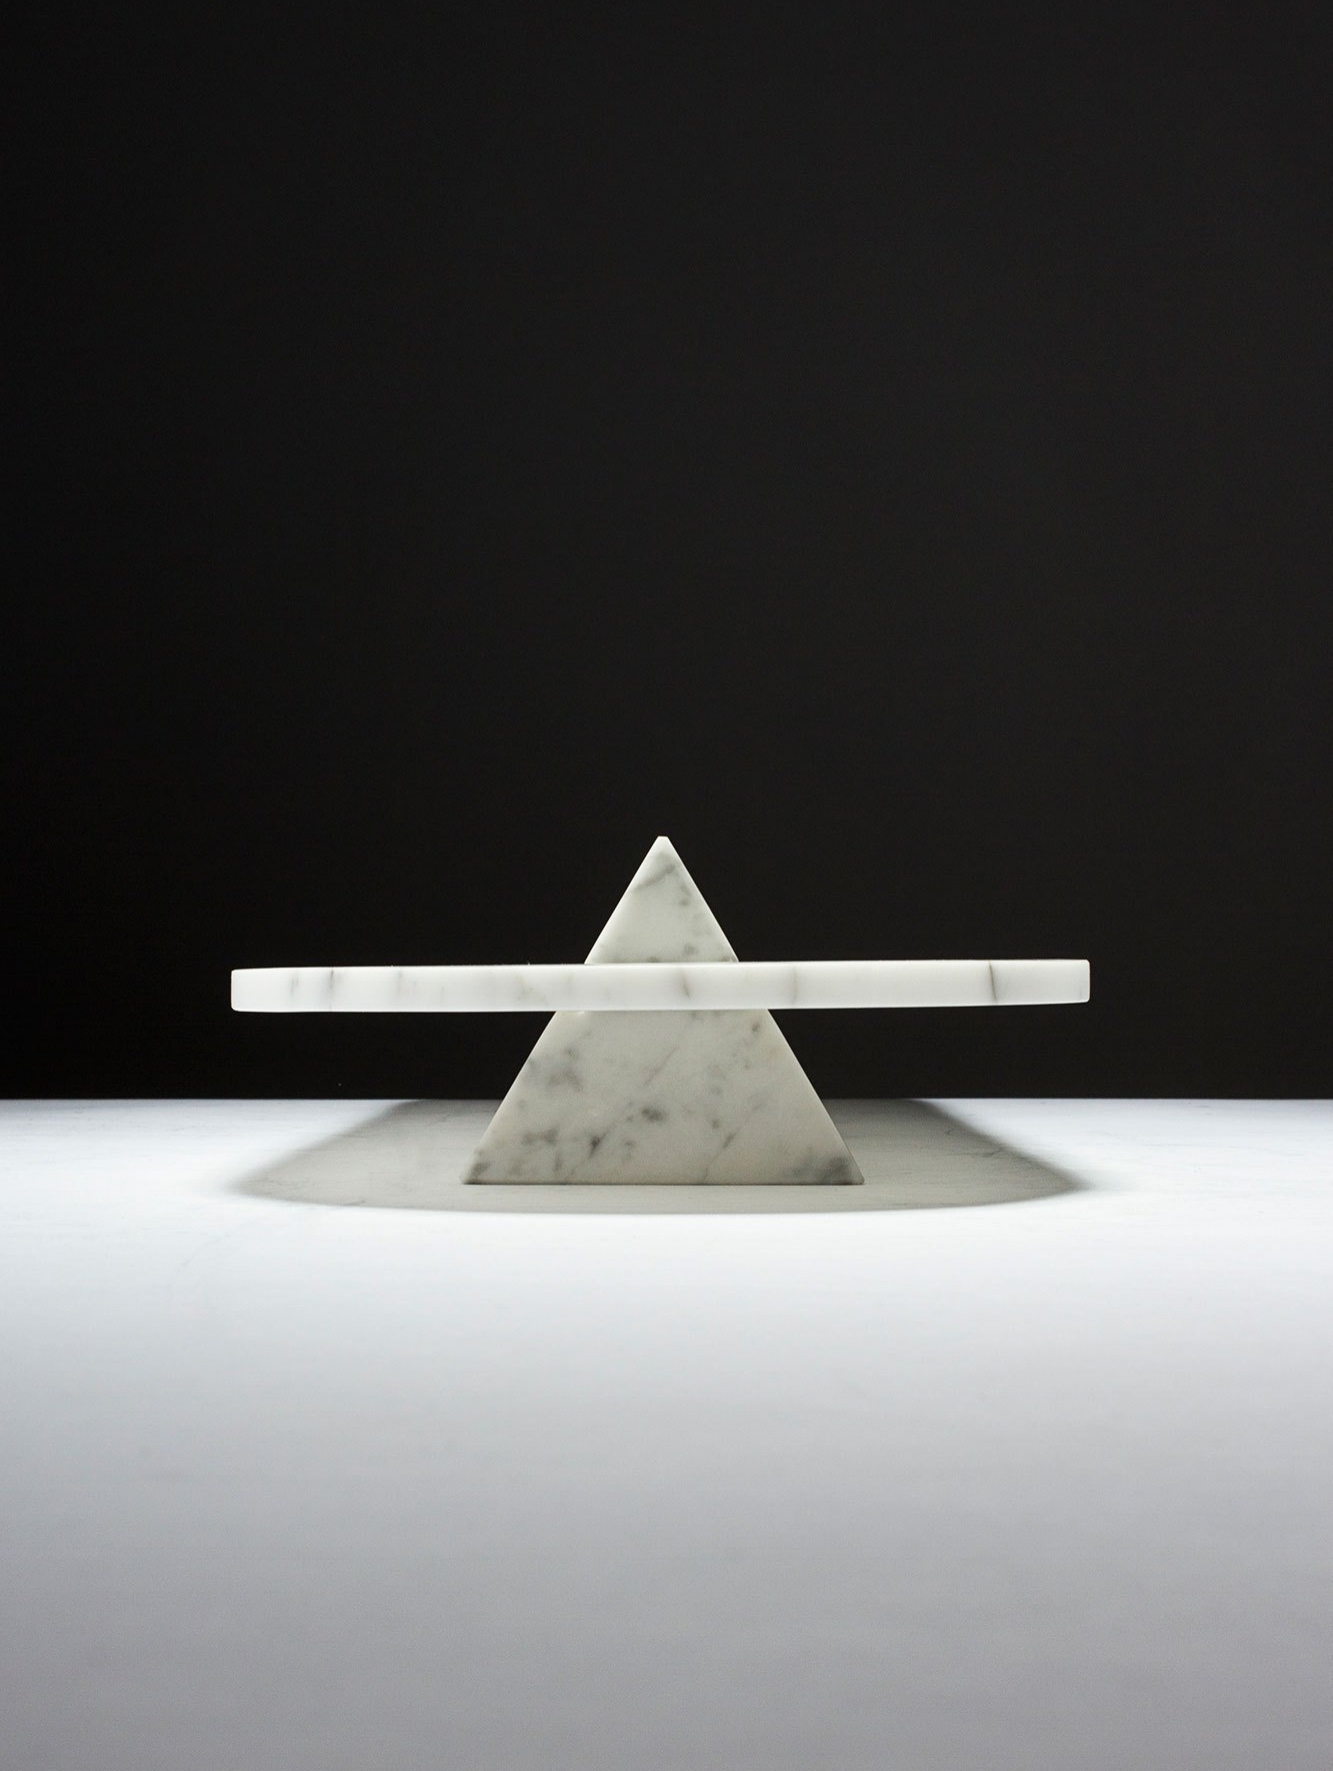 Thevoz Choquet for Bloc Studios - Marmo Domestico Collection N°1 (2015)